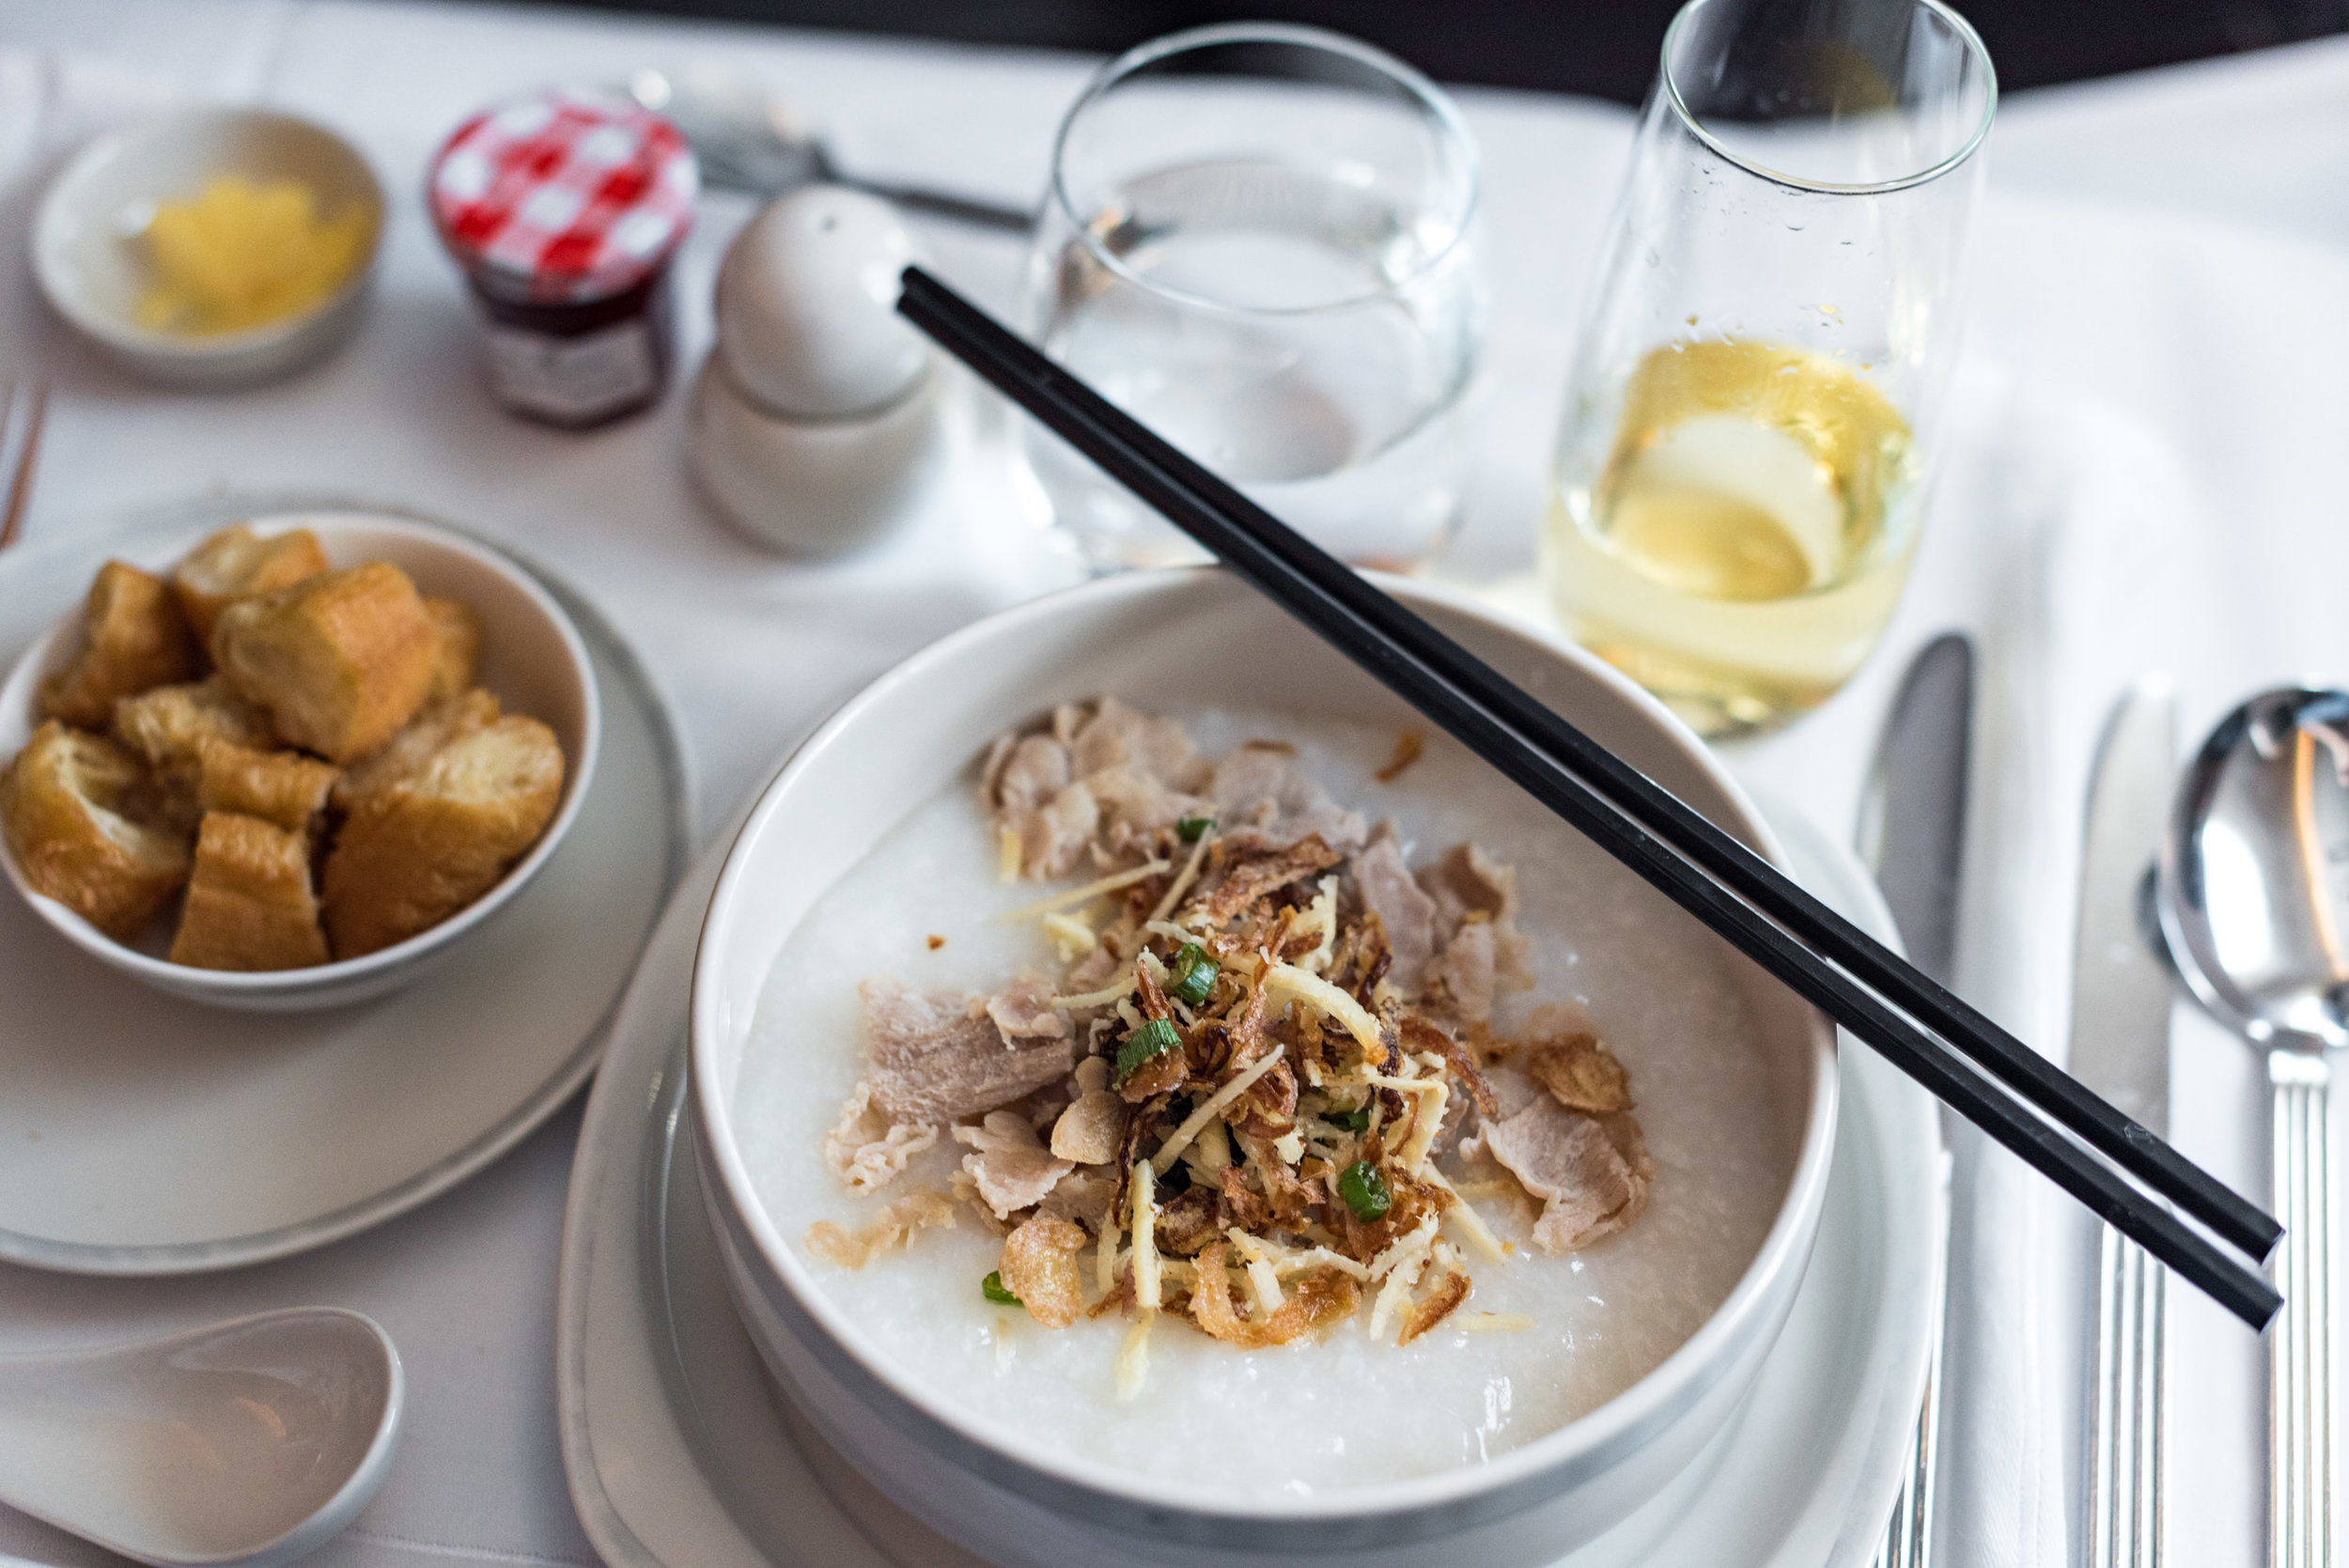 Pork and Century Egg Congee - Brunch Service  Singapore Airlines SQ856 Business - SIN to HKG